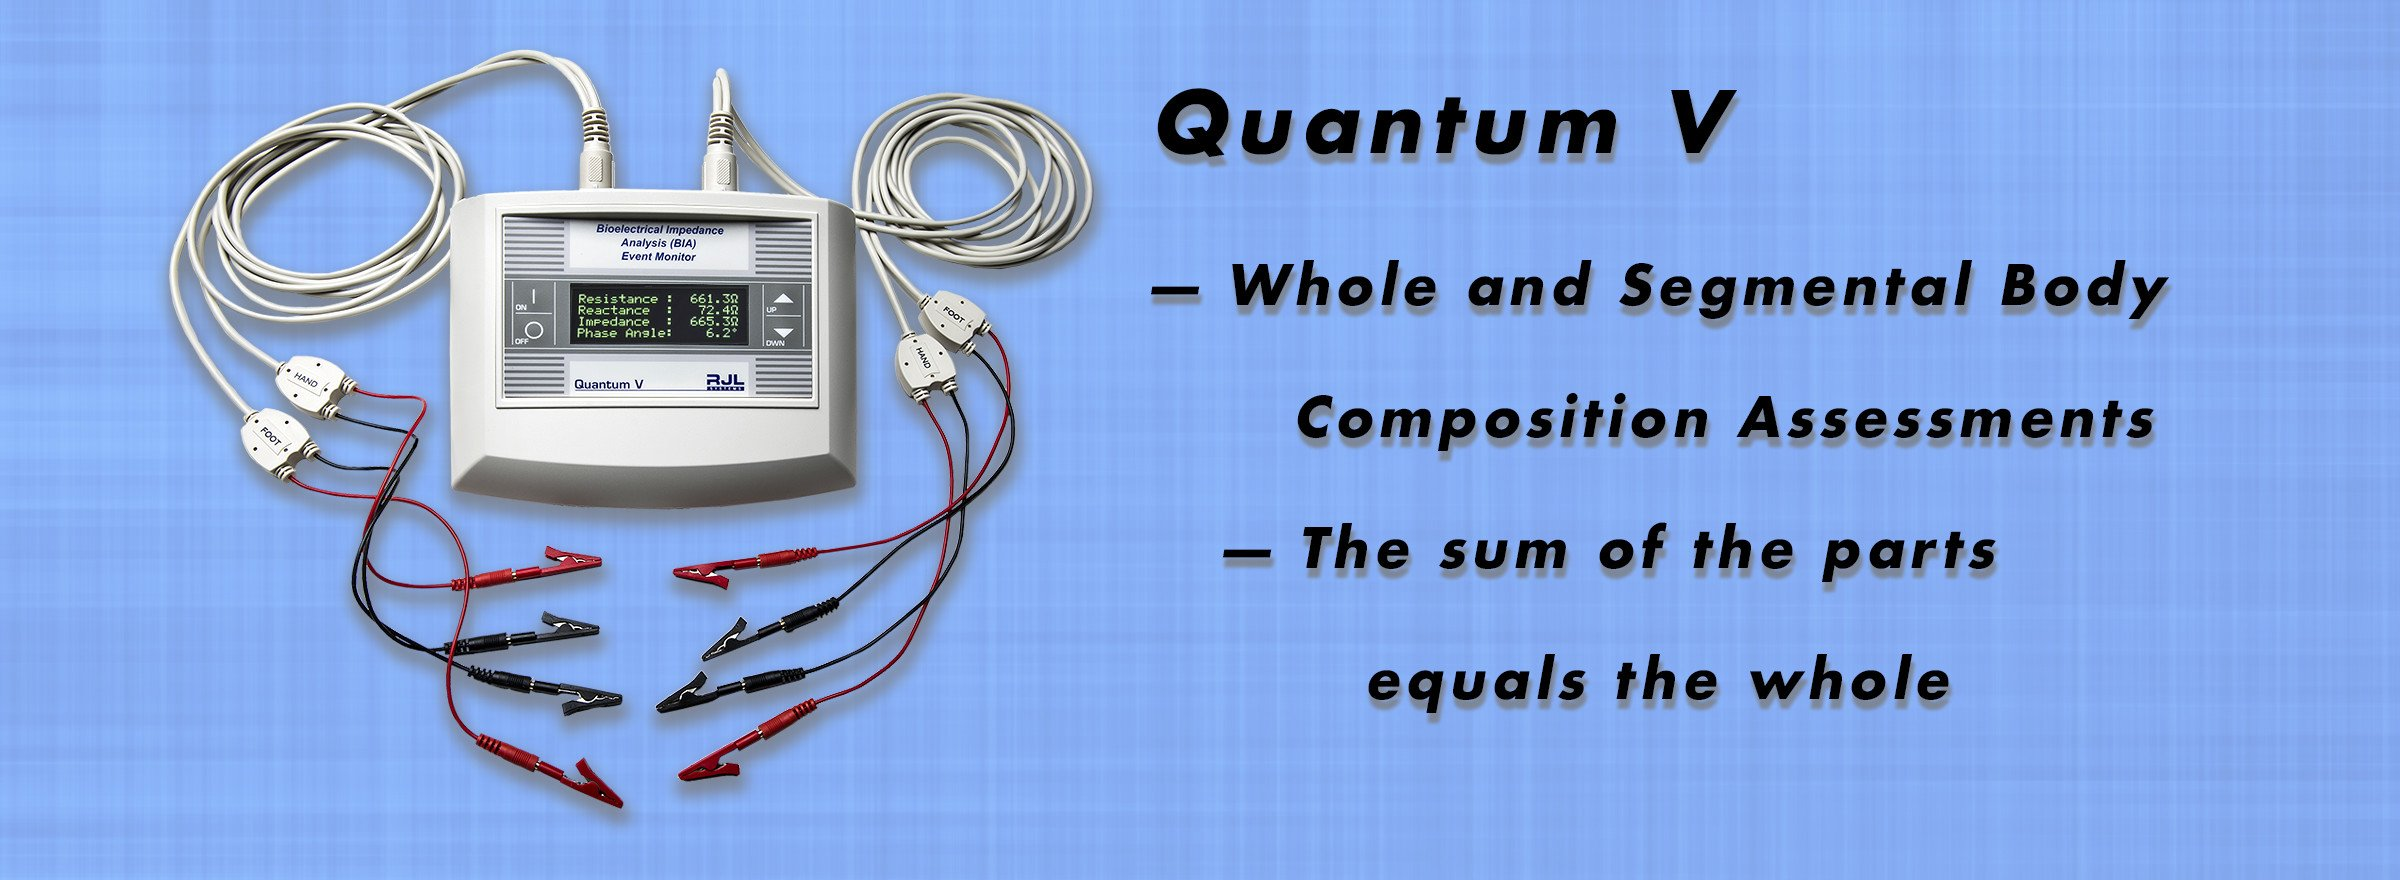 Quantum-V; Whole and Segmental Body Composition Assessments; The sum of the parts equals the whole